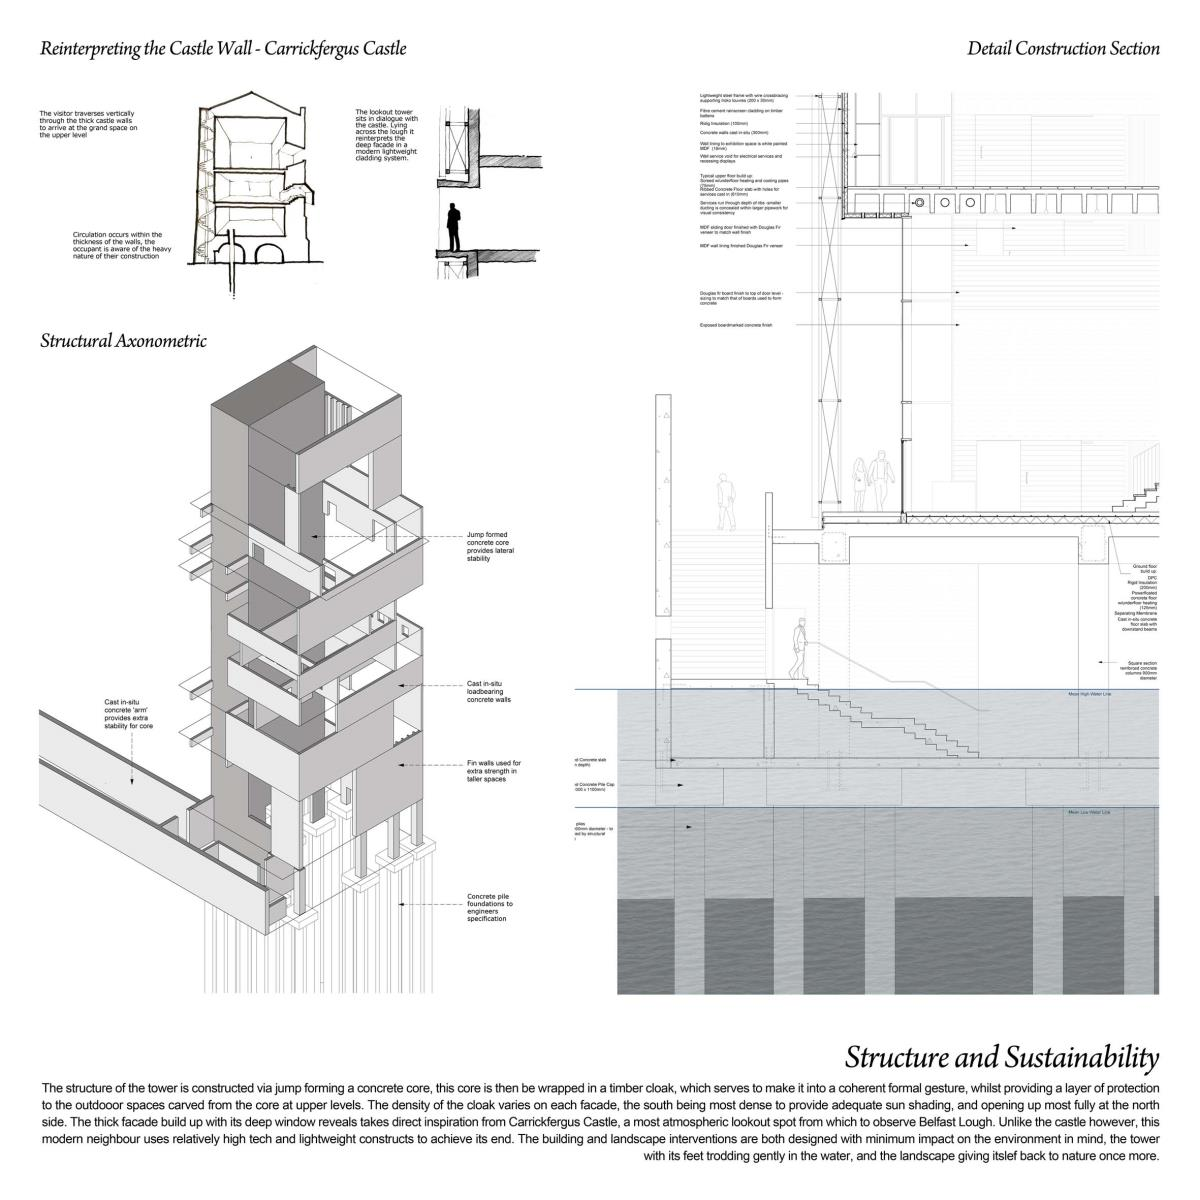 Diagrams detailing the curtain wall at Carrickfergus Castle.